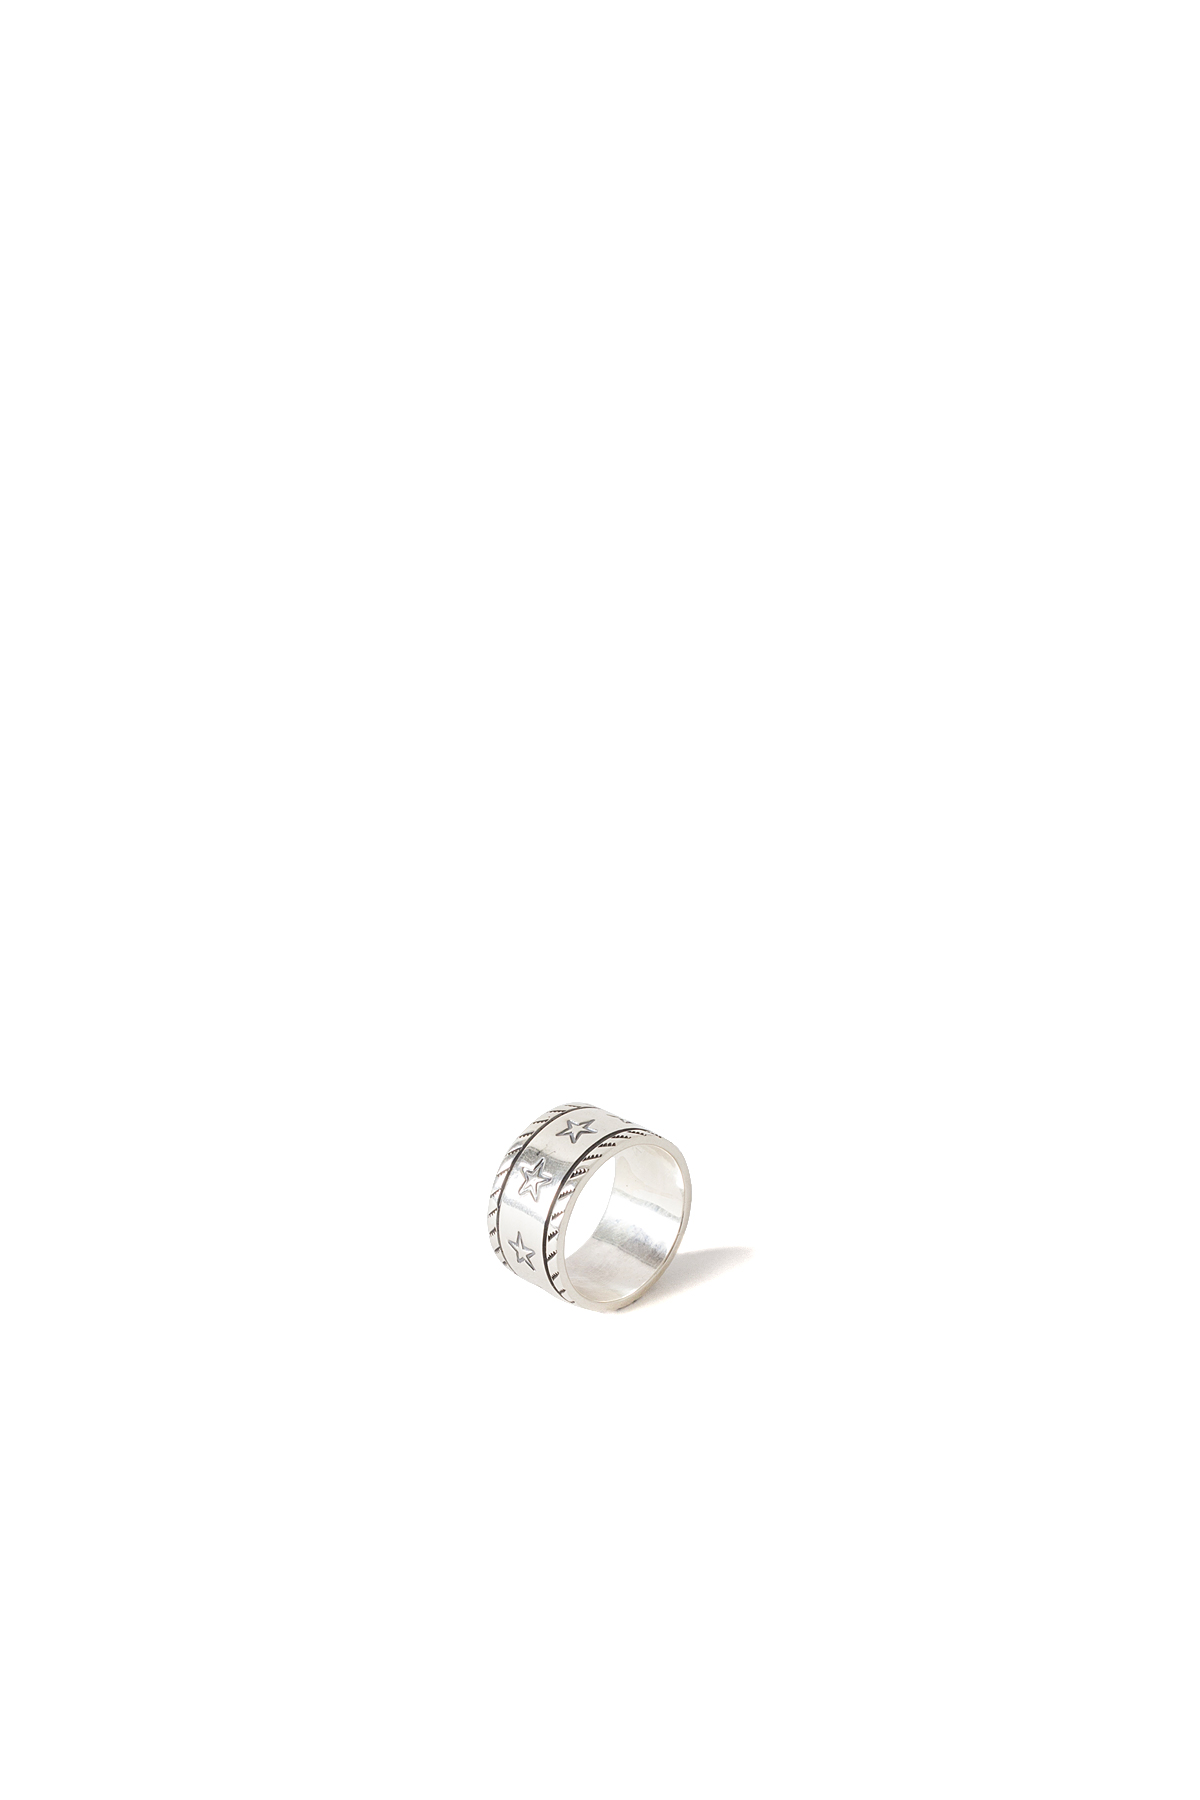 North Works : 900 Silver Stamp Ring - W053